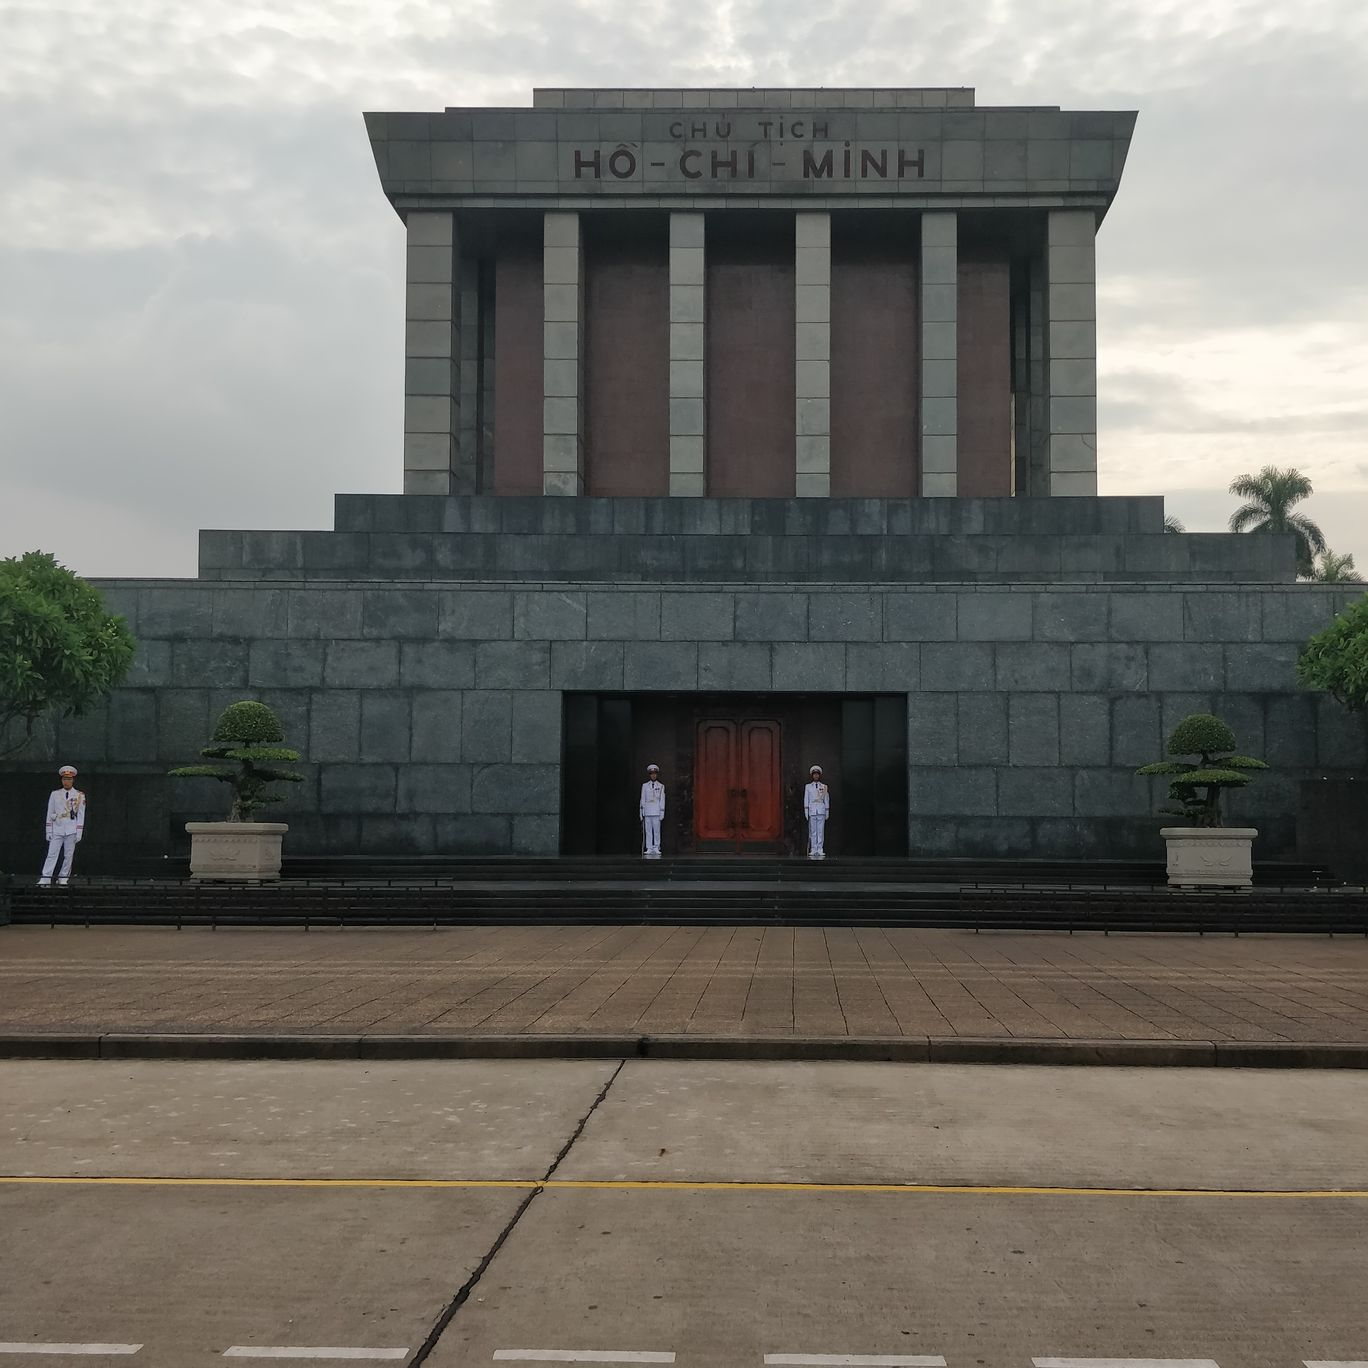 Photo of Ho Chi Minh Mausoleum By Rohit Kamath